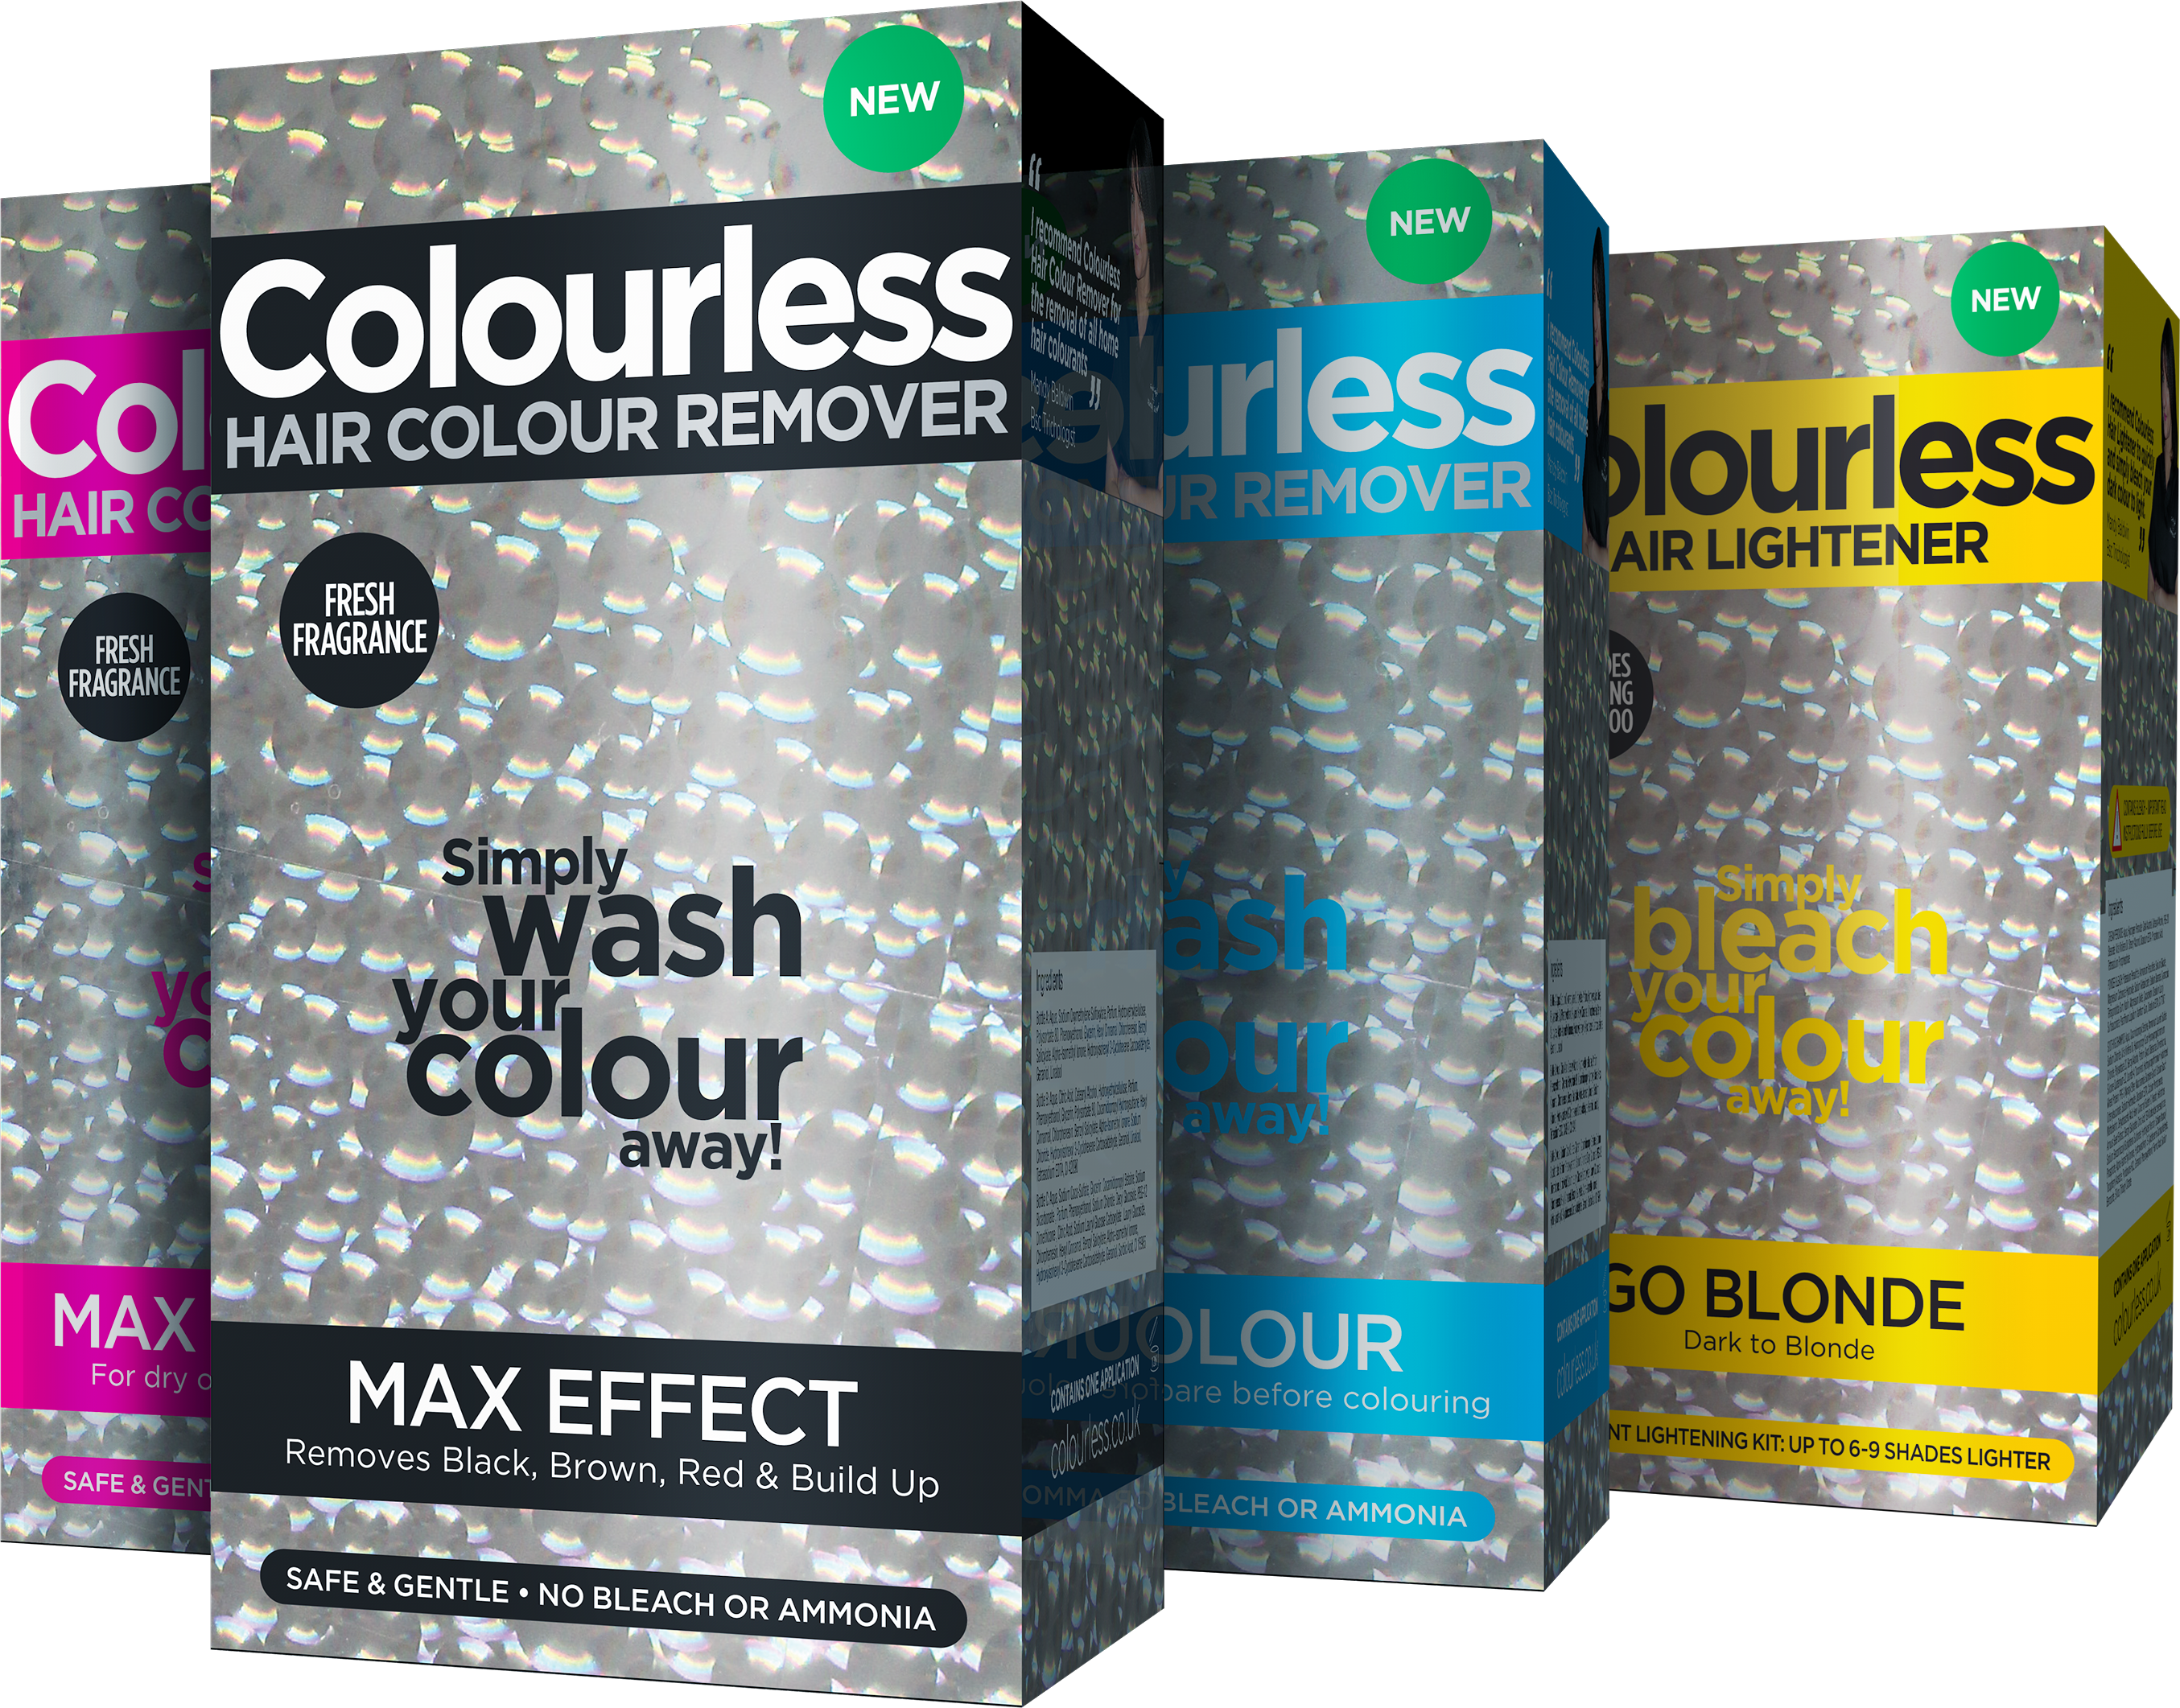 Colourless Hair Colour Remover Simply Wash Your Colour Away